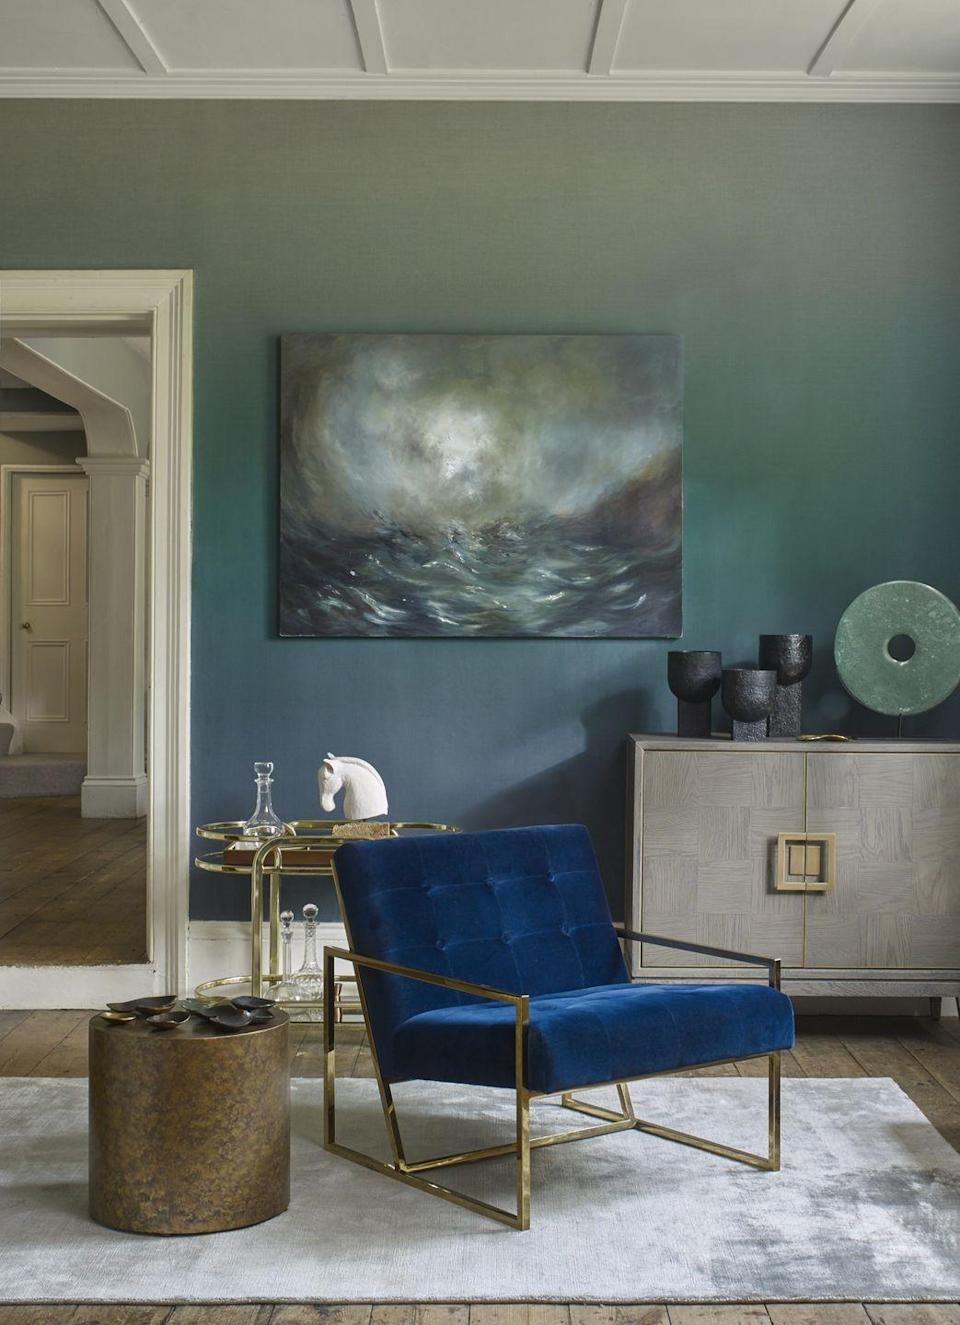 """<p>A lovely way to add colour to a plain living room is with <a href=""""https://www.housebeautiful.com/uk/decorate/walls/how-to/a461/how-to-paint-an-ombre-wall/"""" rel=""""nofollow noopener"""" target=""""_blank"""" data-ylk=""""slk:ombre"""" class=""""link rapid-noclick-resp"""">ombre</a> wallpaper. Choose your favourite shade then have a wall that begins with a deep tone at the bottom and graduates to a paler shade at the top. It's subtle, calming, and easy to live with, especially in this lovely blue.</p><p>Pictured: Horizon Deep Blue wallpaper, <a href=""""https://elizabethockford.com/horizon/"""" rel=""""nofollow noopener"""" target=""""_blank"""" data-ylk=""""slk:Elizabeth Ockford"""" class=""""link rapid-noclick-resp"""">Elizabeth Ockford</a></p>"""